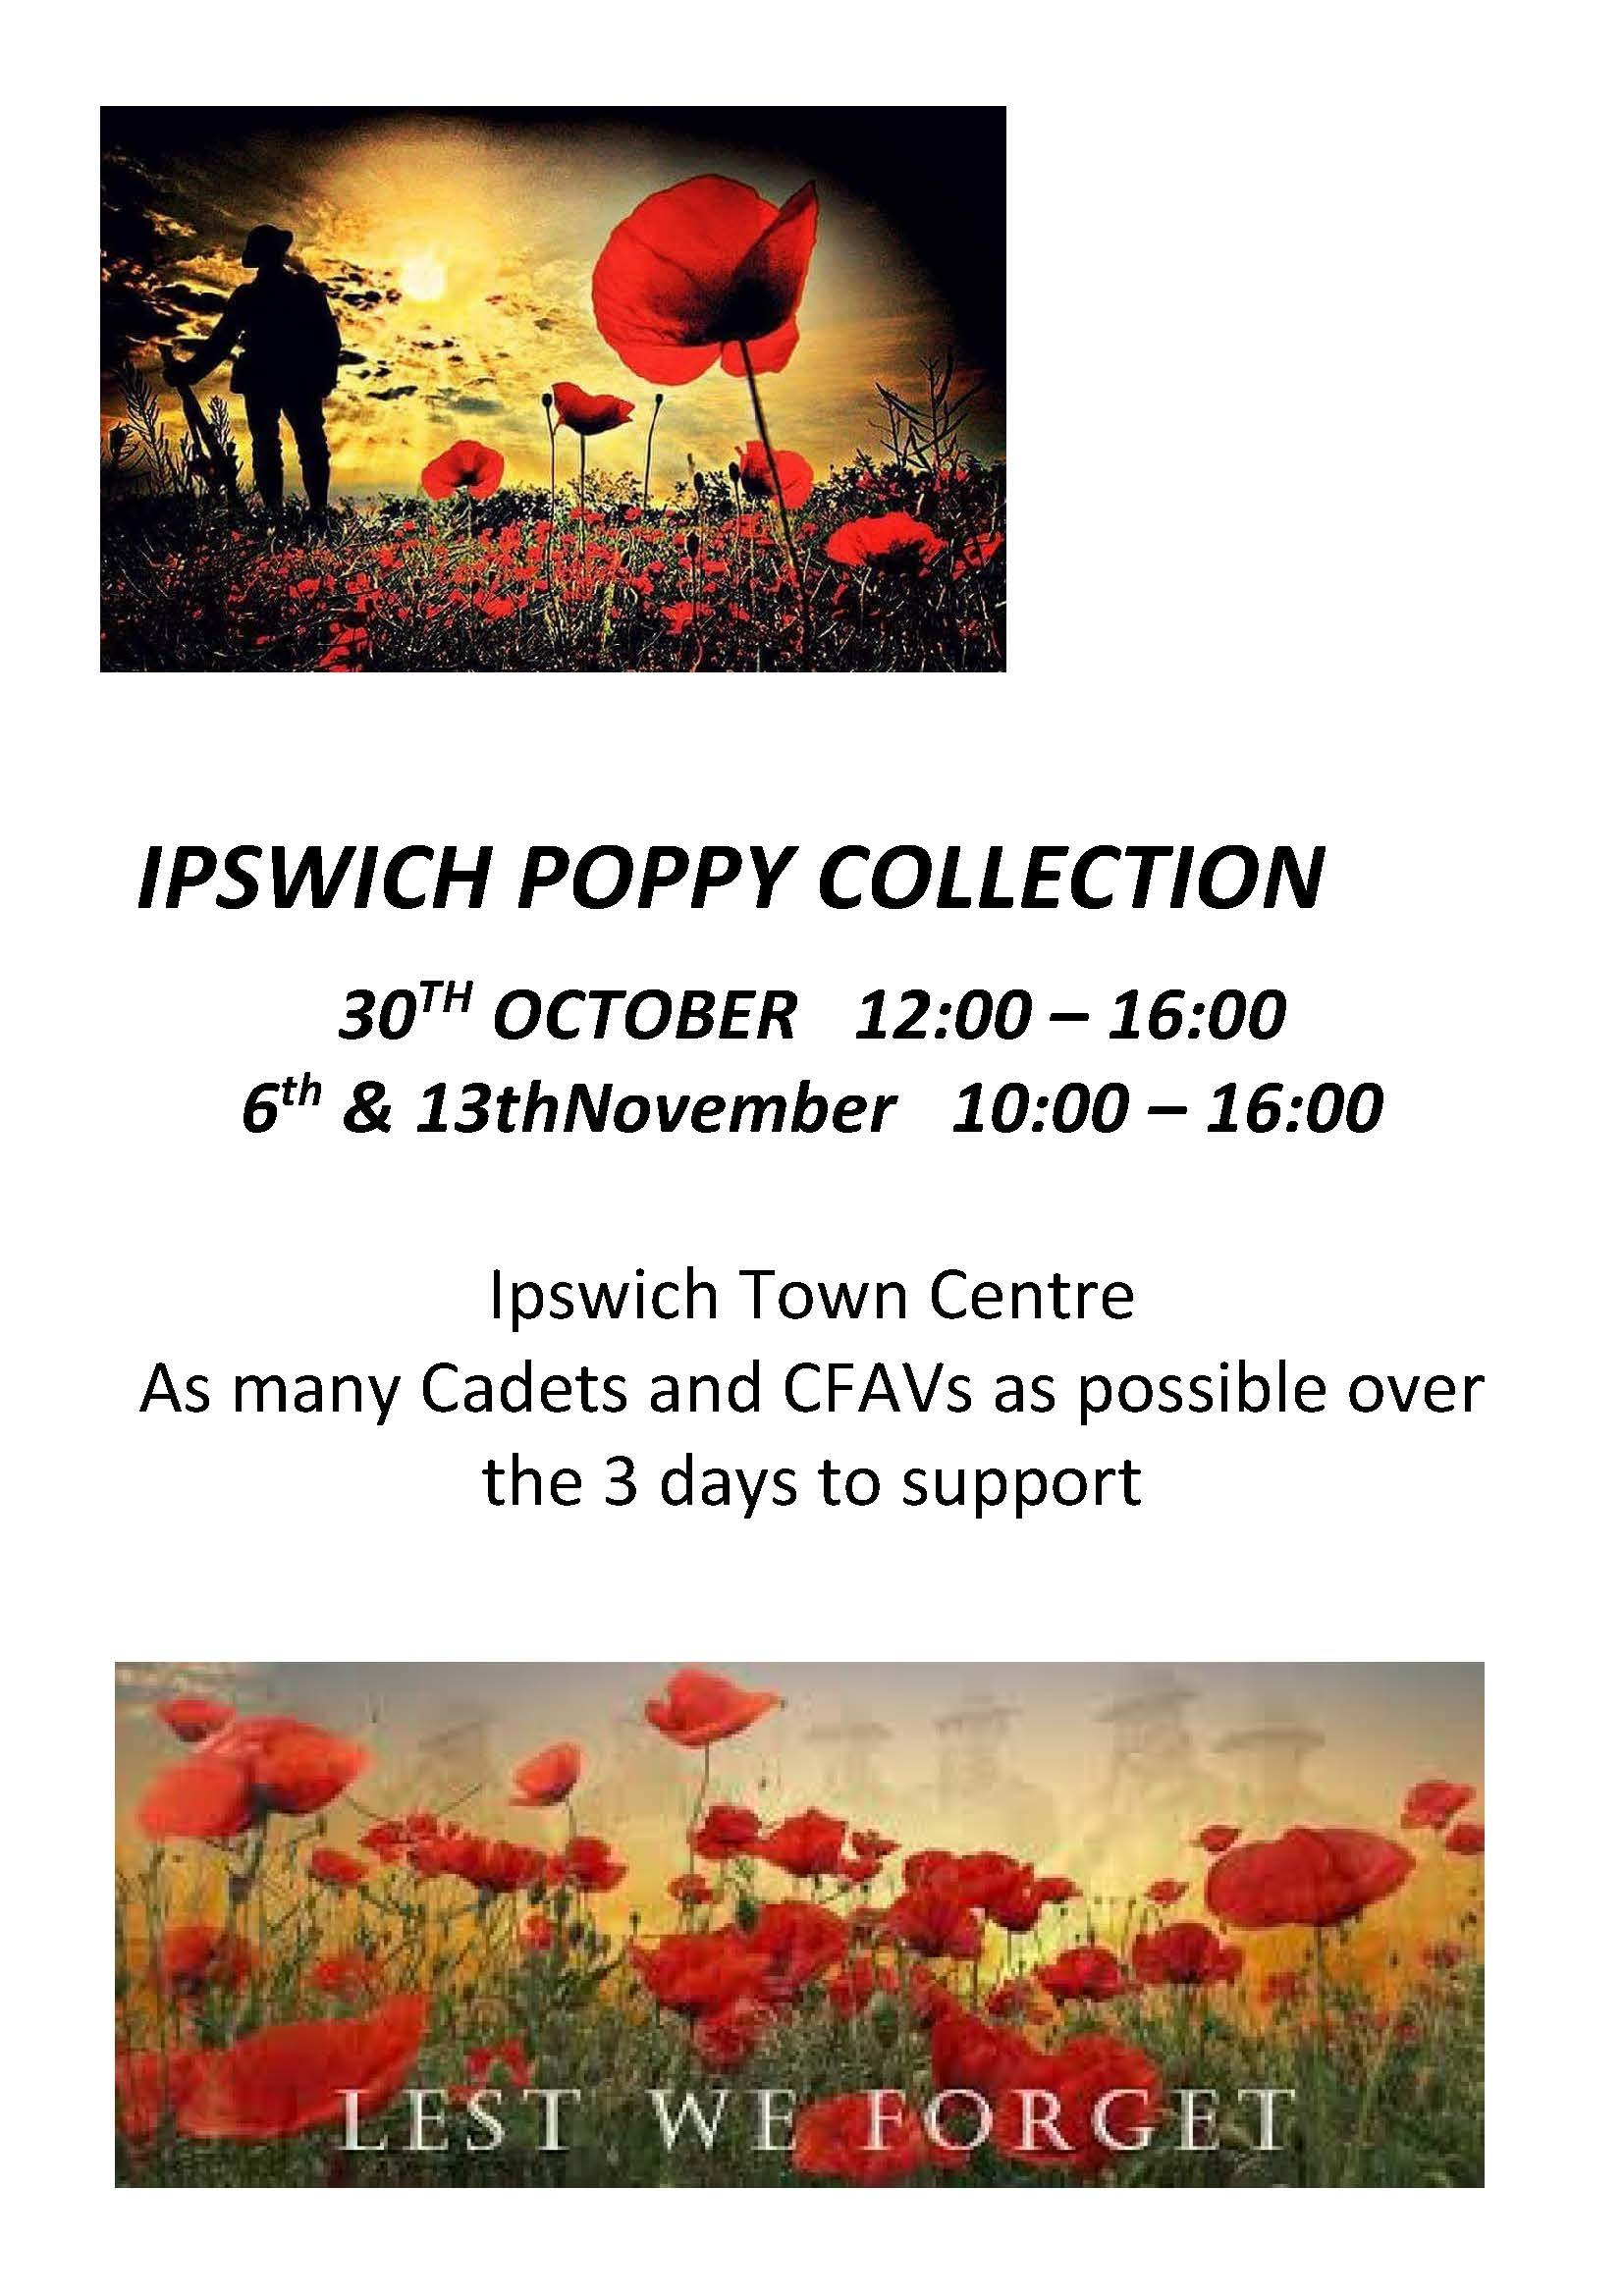 Poppy Collection Poster